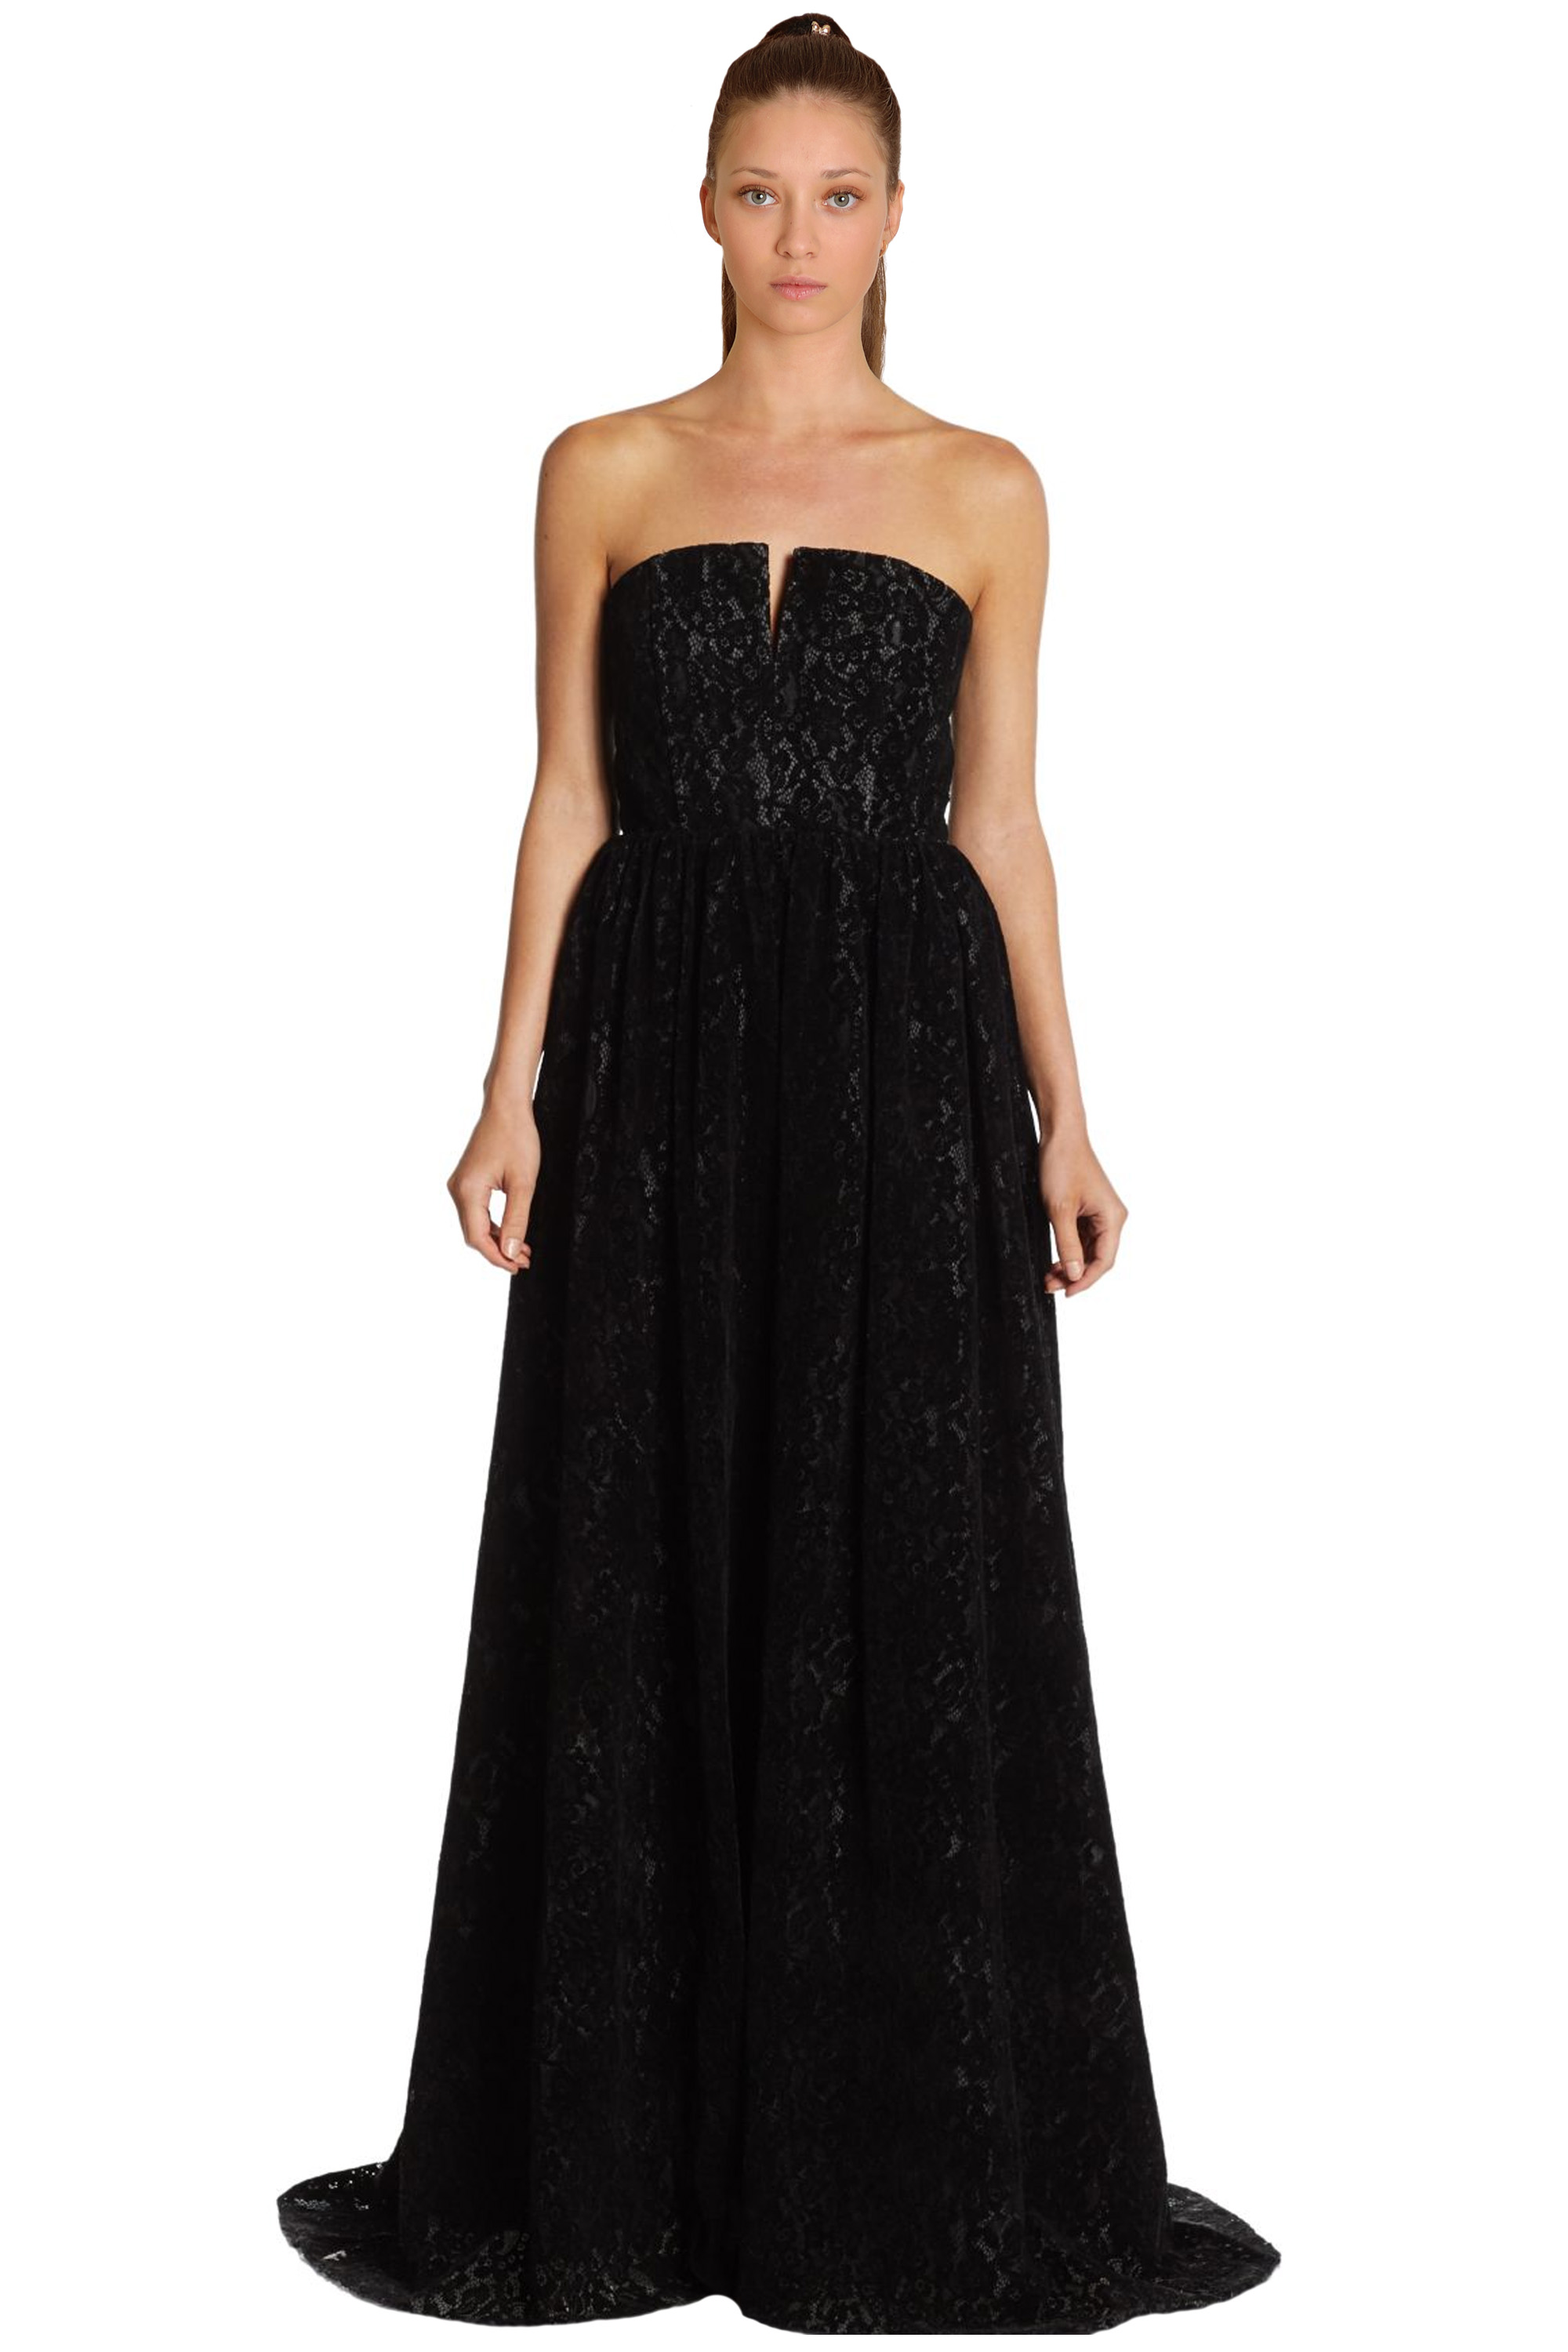 Alice & Olivia Axmis Black Flocked Lace Bustier Strapless Evening ...